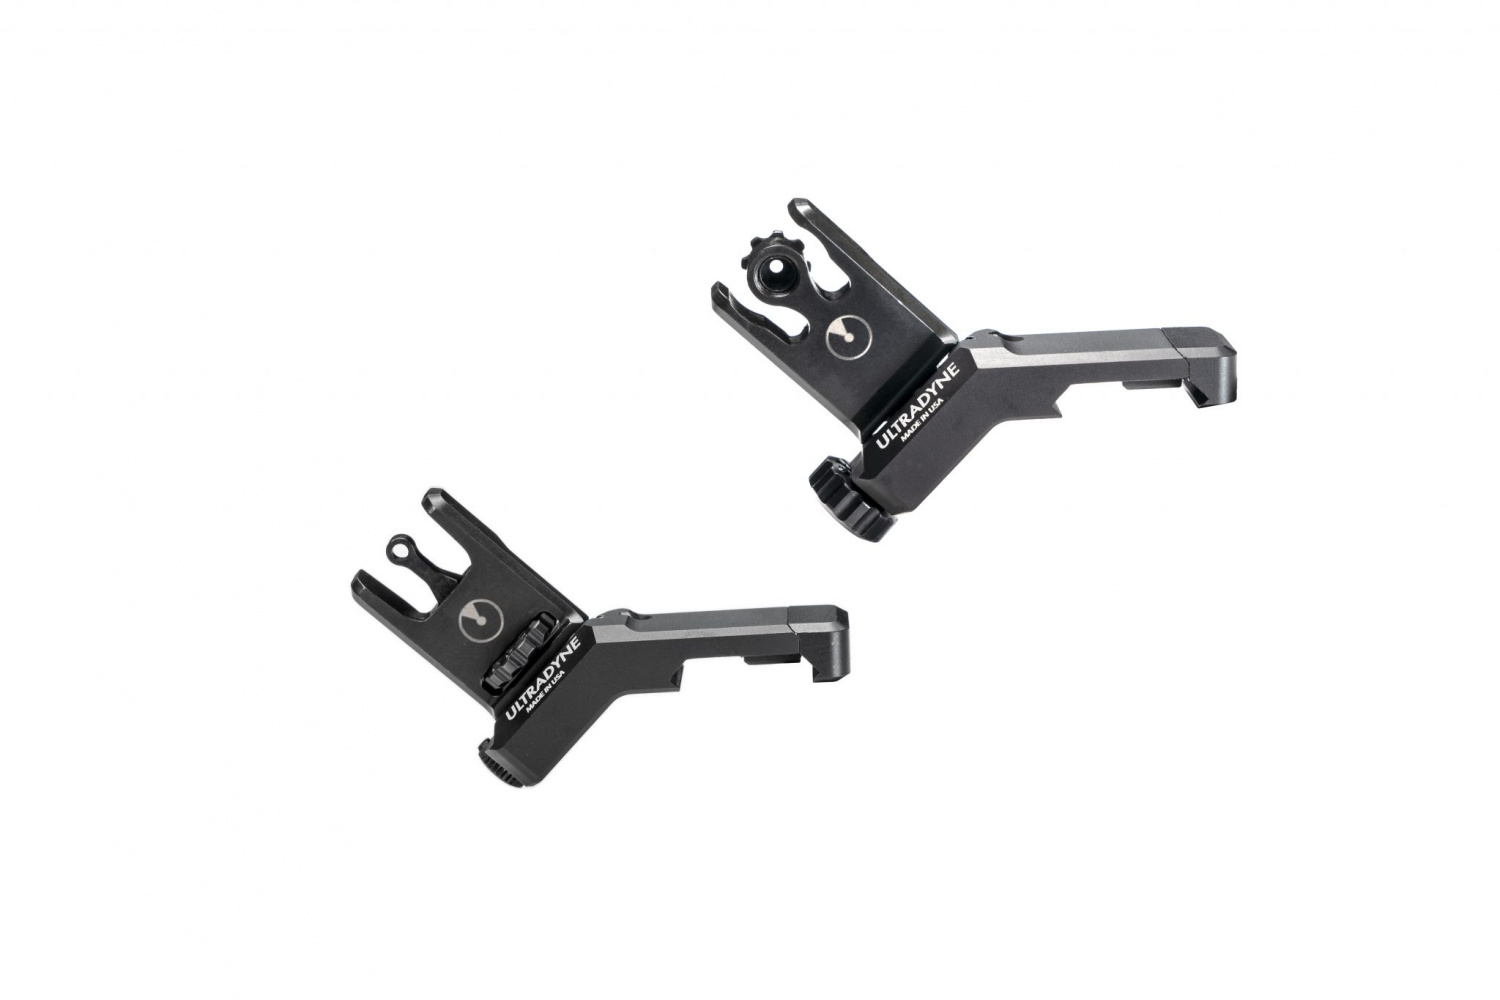 Ultradyne C2 iron sights